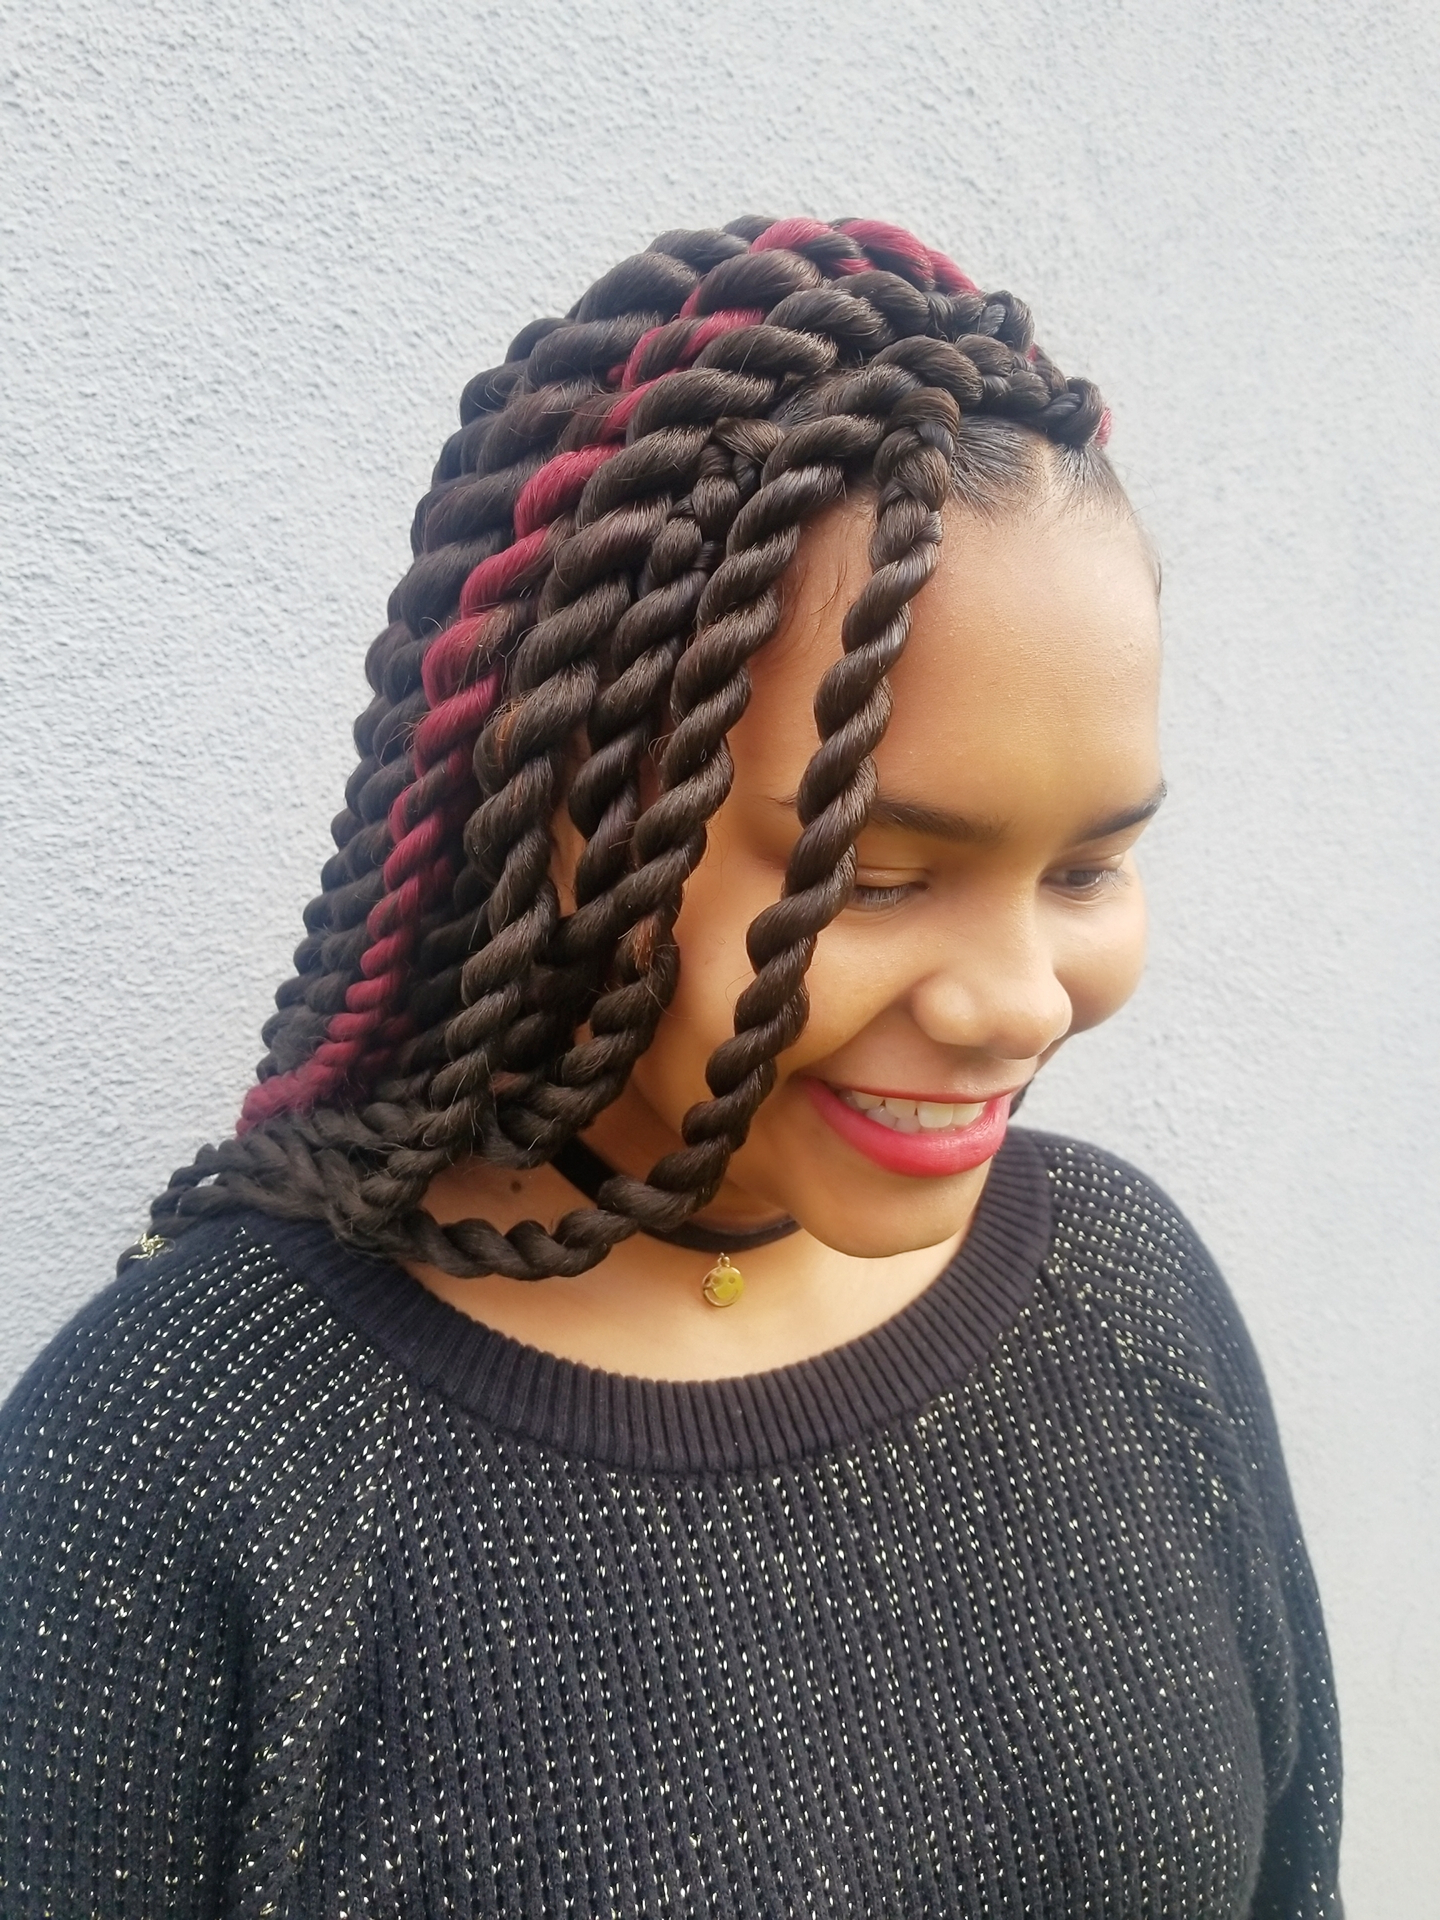 Here's Everything You Need To Know About Getting Braids With Most Popular African Red Twists Micro Braid Hairstyles (View 10 of 20)